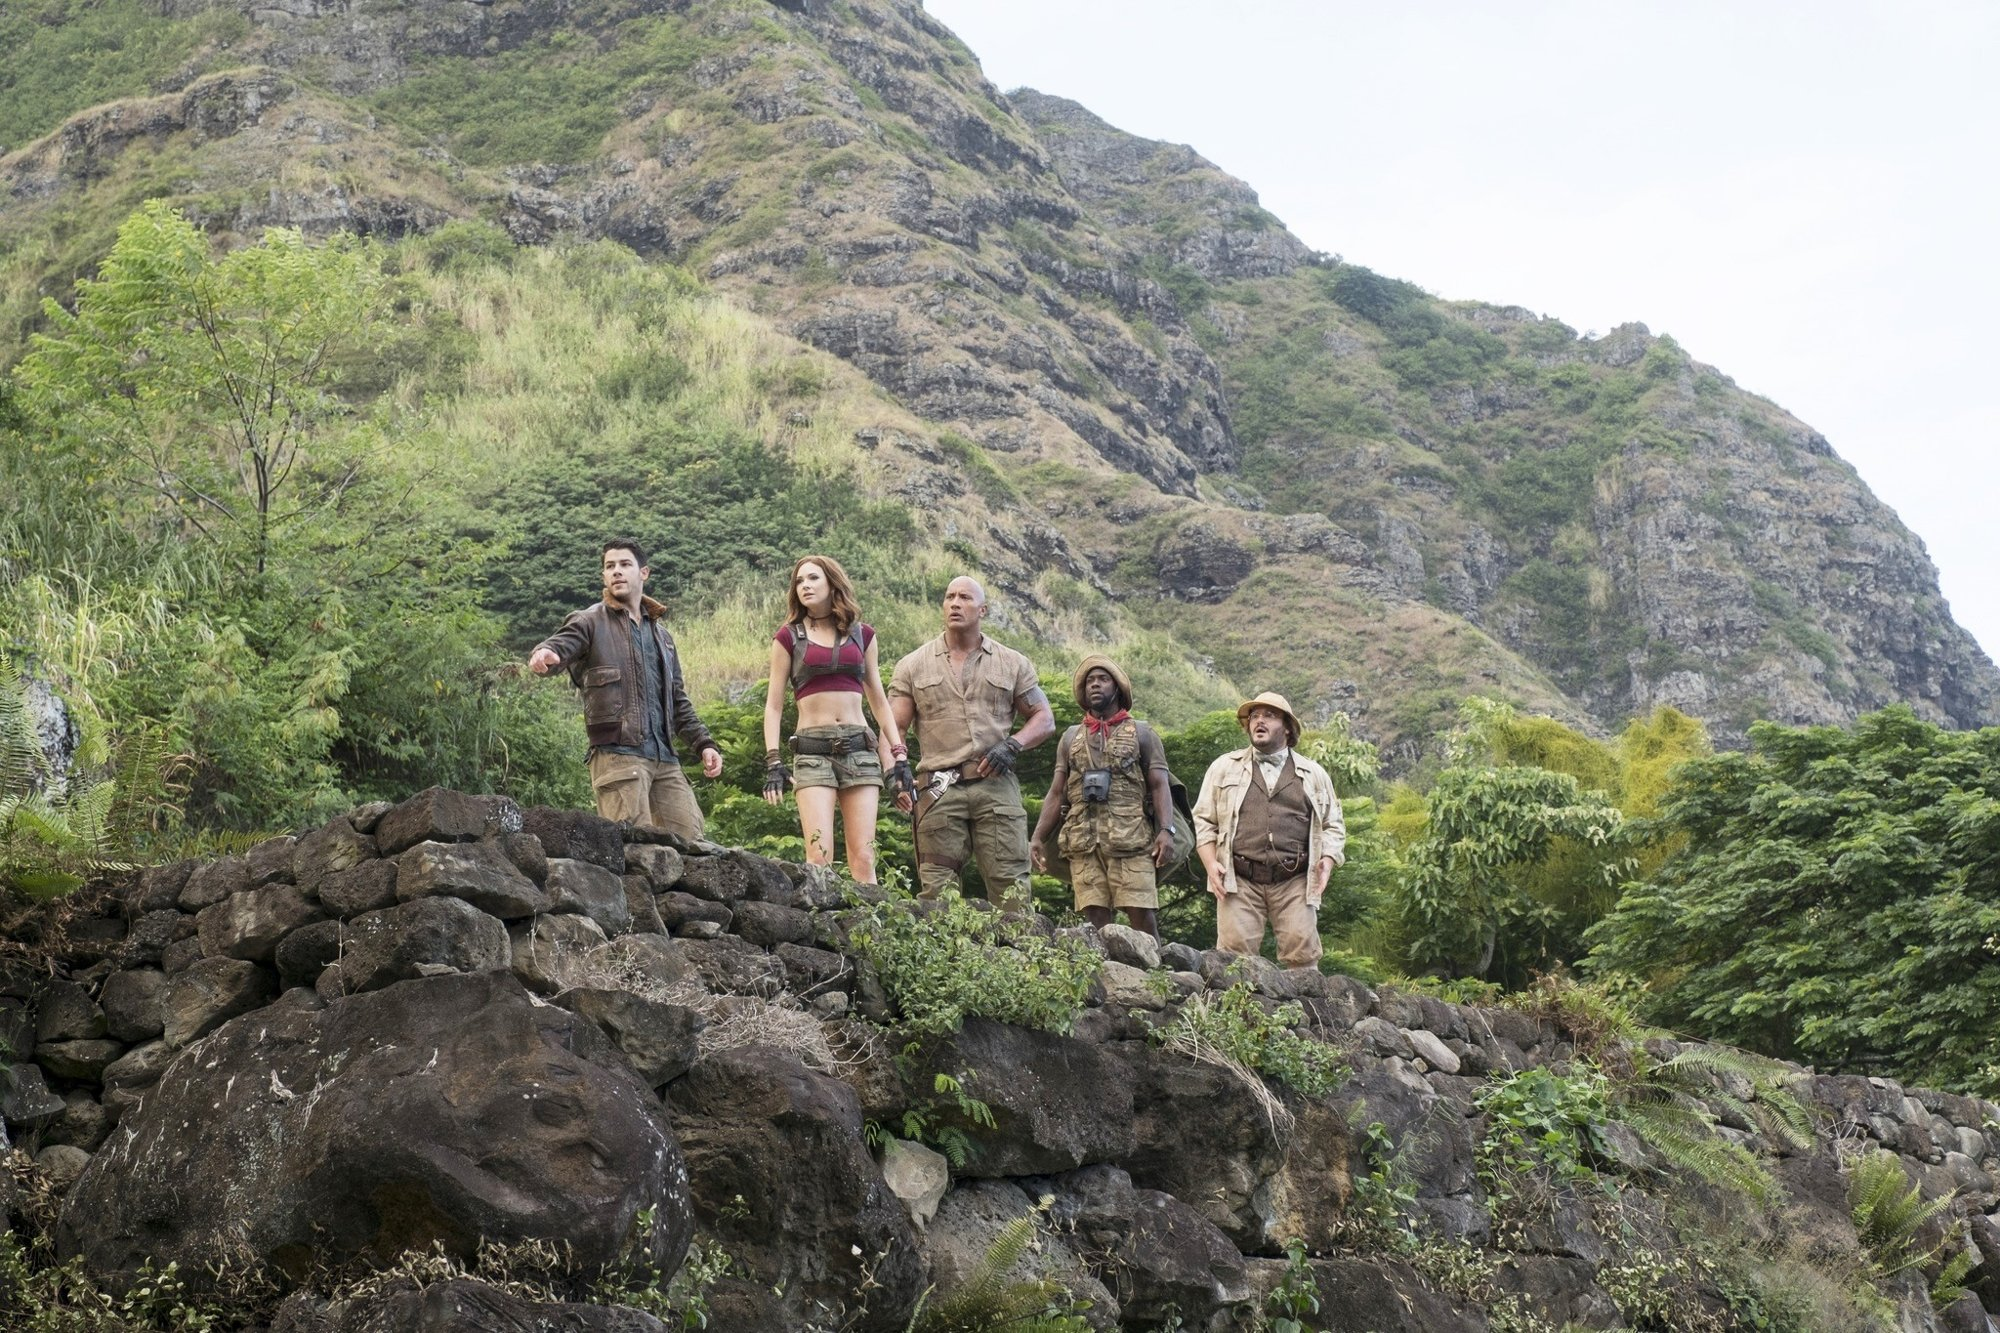 Nick Jonas, Karen Gillan, The Rock, Kevin Hart and Jack Black in Columbia Pictures' Jumanji: Welcome to the Jungle (2017)